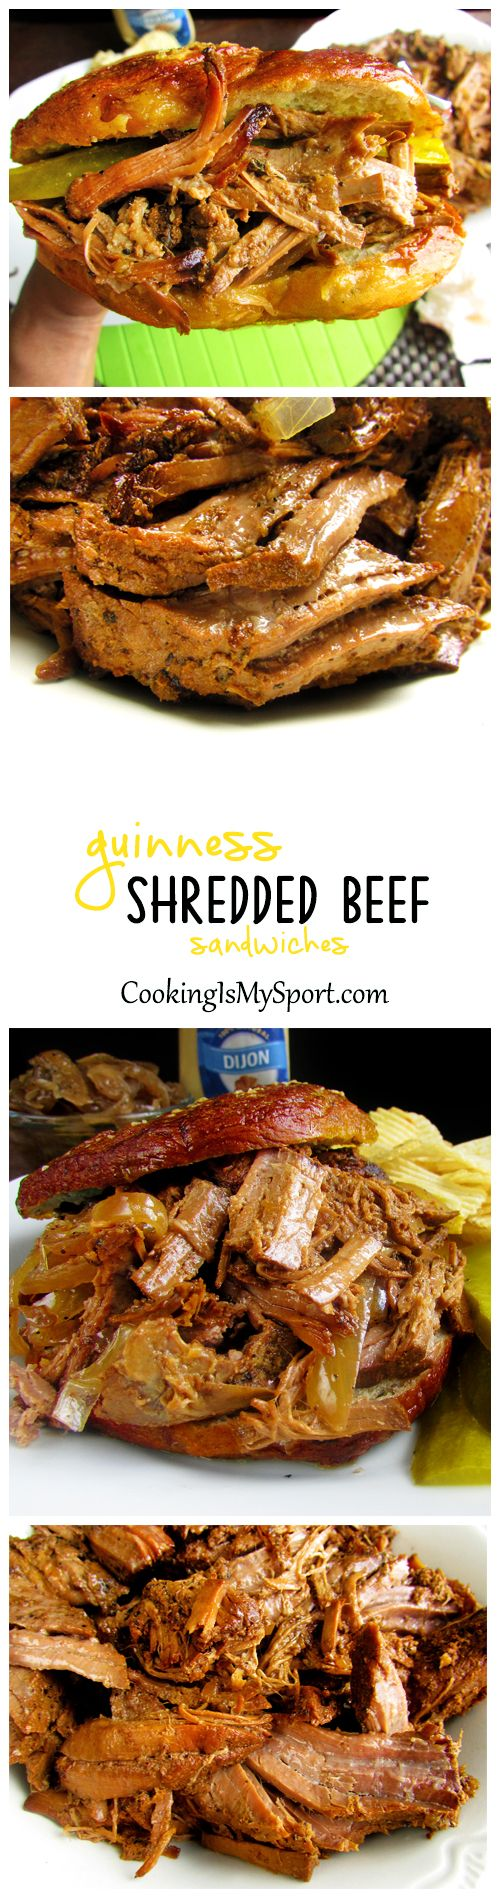 Guinness Shredded Beef Sandwiches                                                                                                                                                                                 More